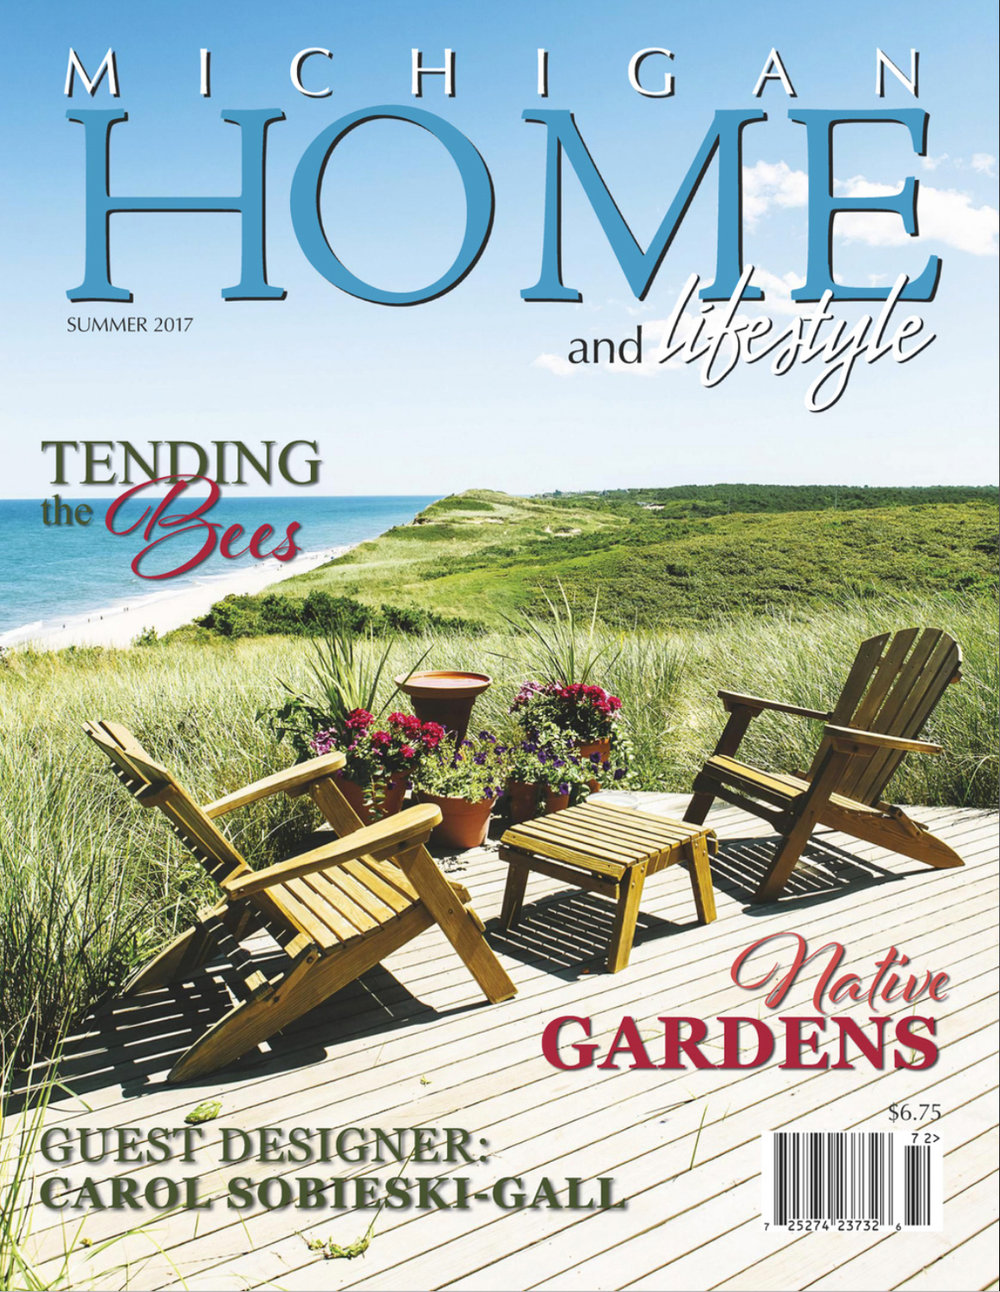 Michigan Home and Lifestyle Magazine – Summer 2017